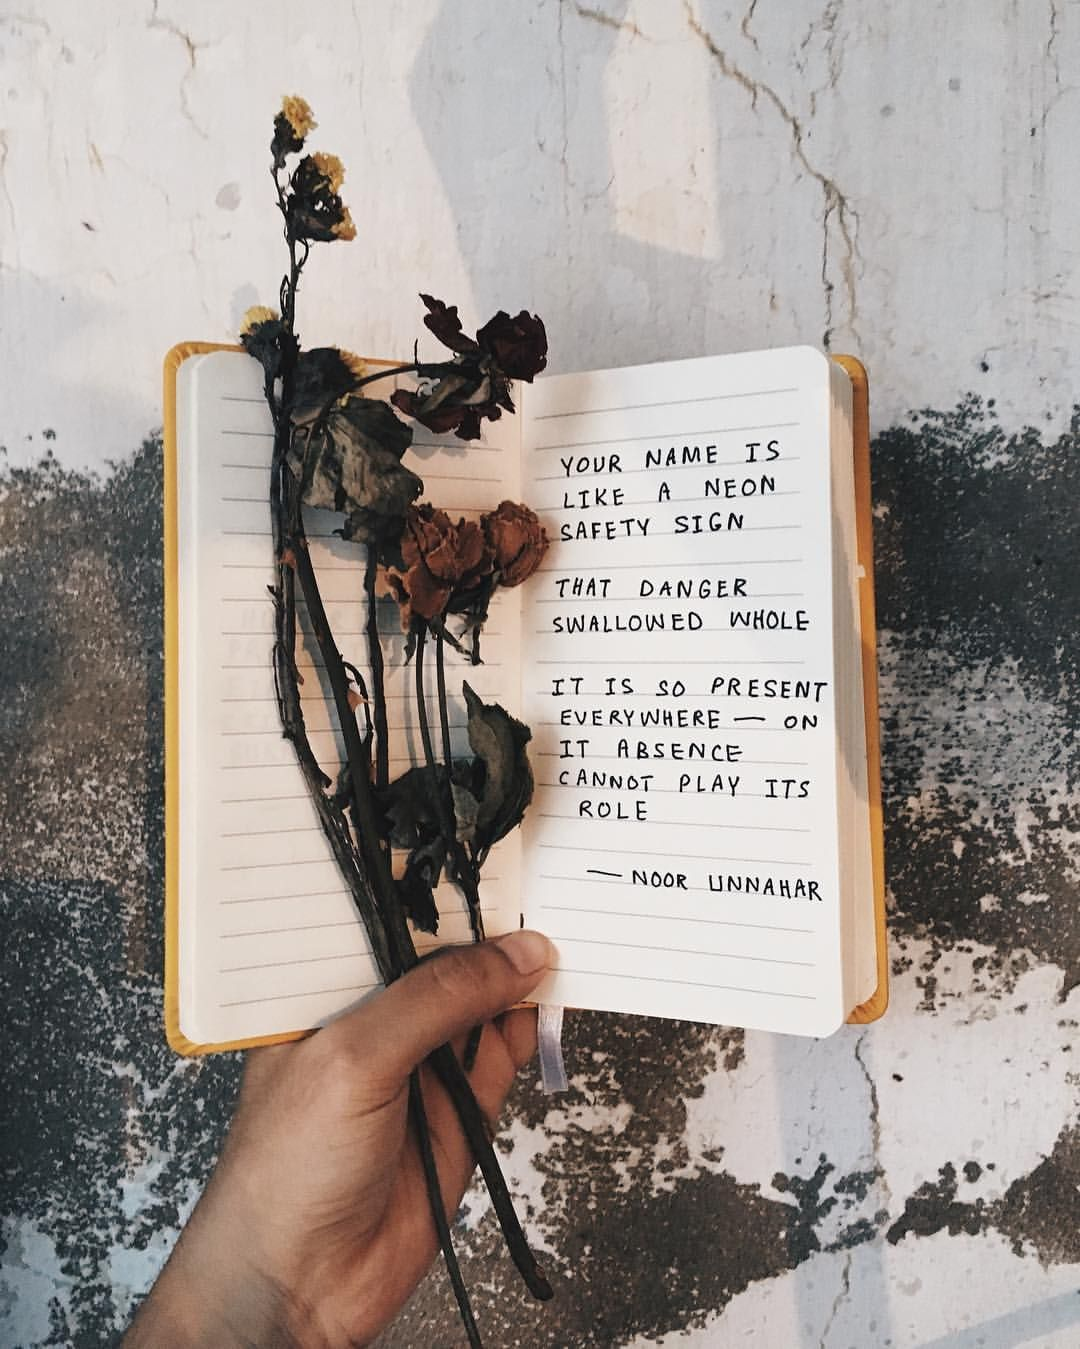 Poetry by noor unnahar words quotes indie pale grunge for Tumblr photography ideas